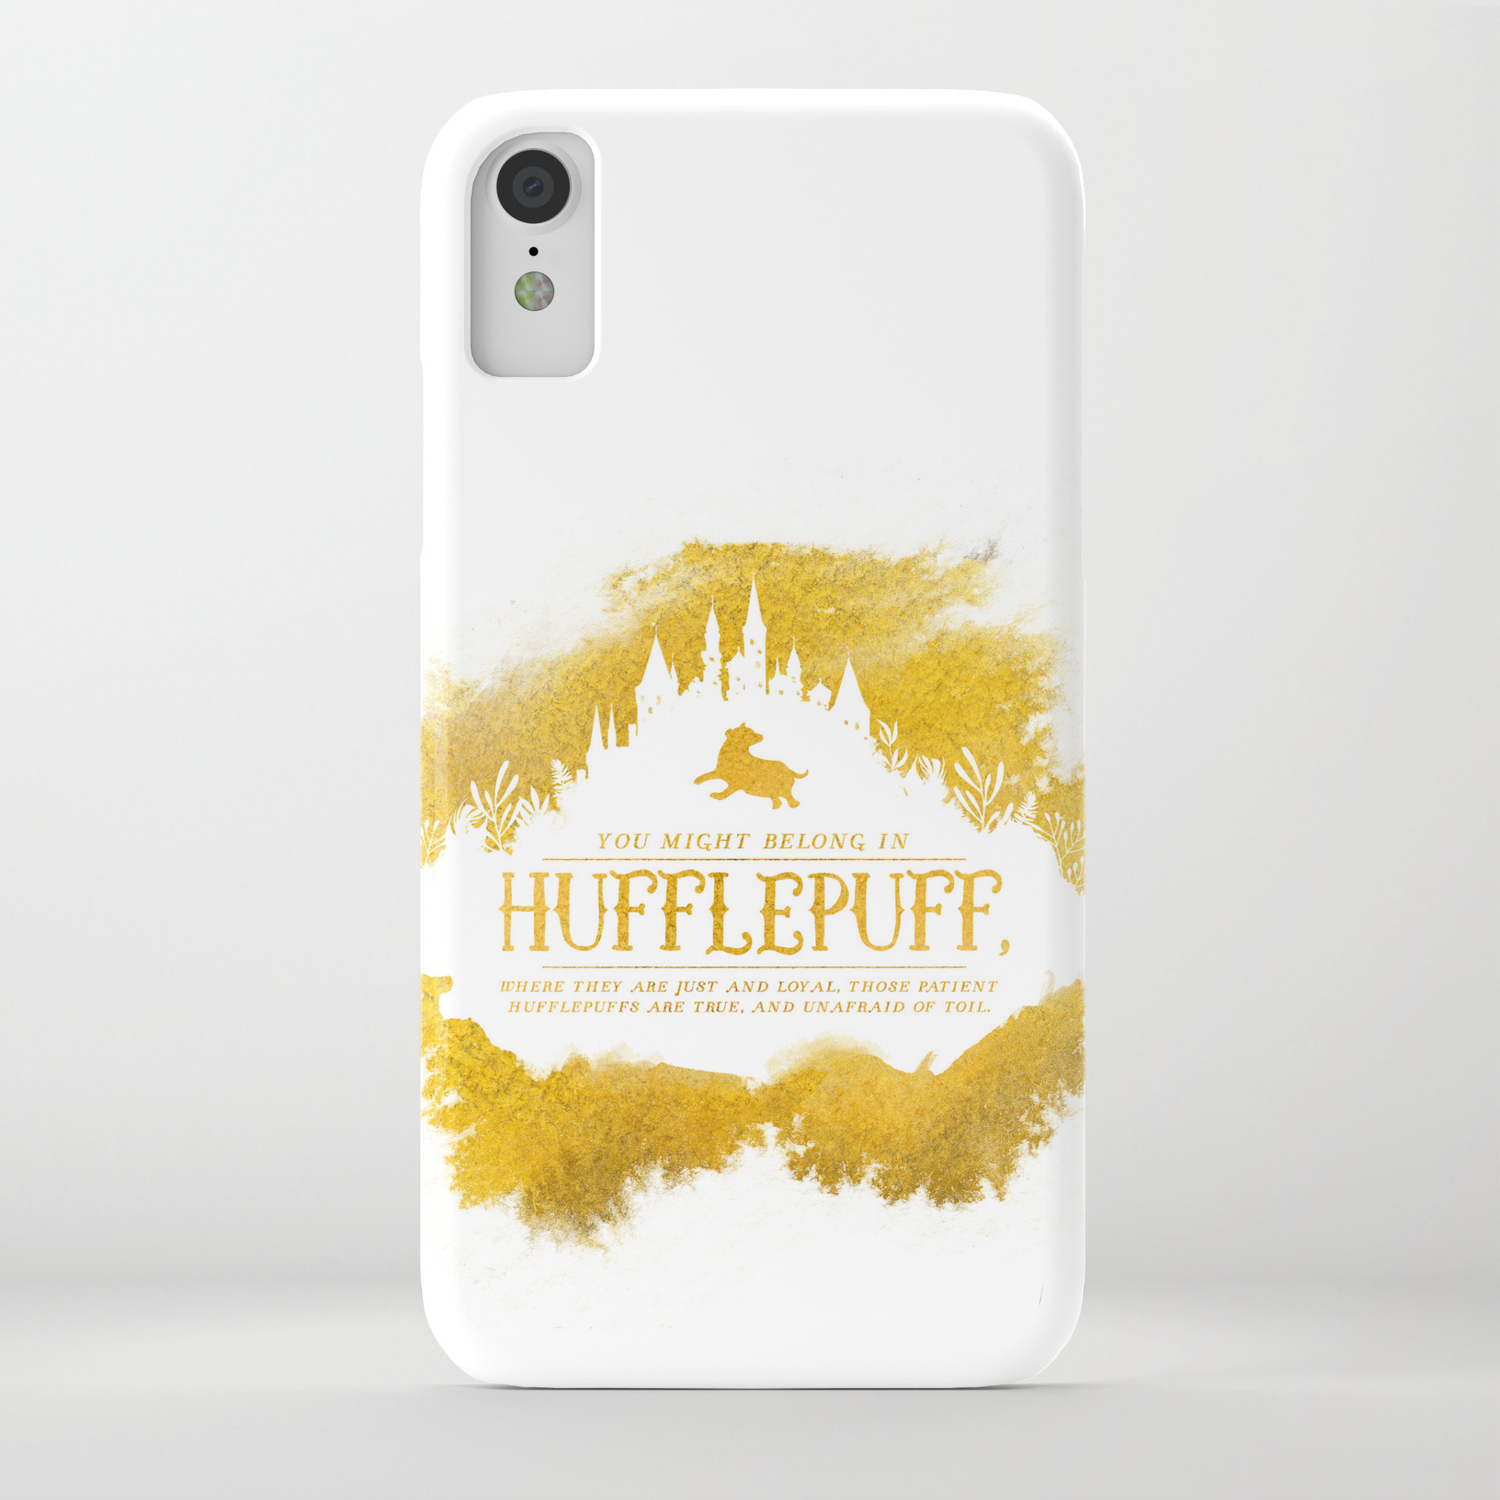 on sale 65b66 e3d2f Hufflepuff iPhone Case